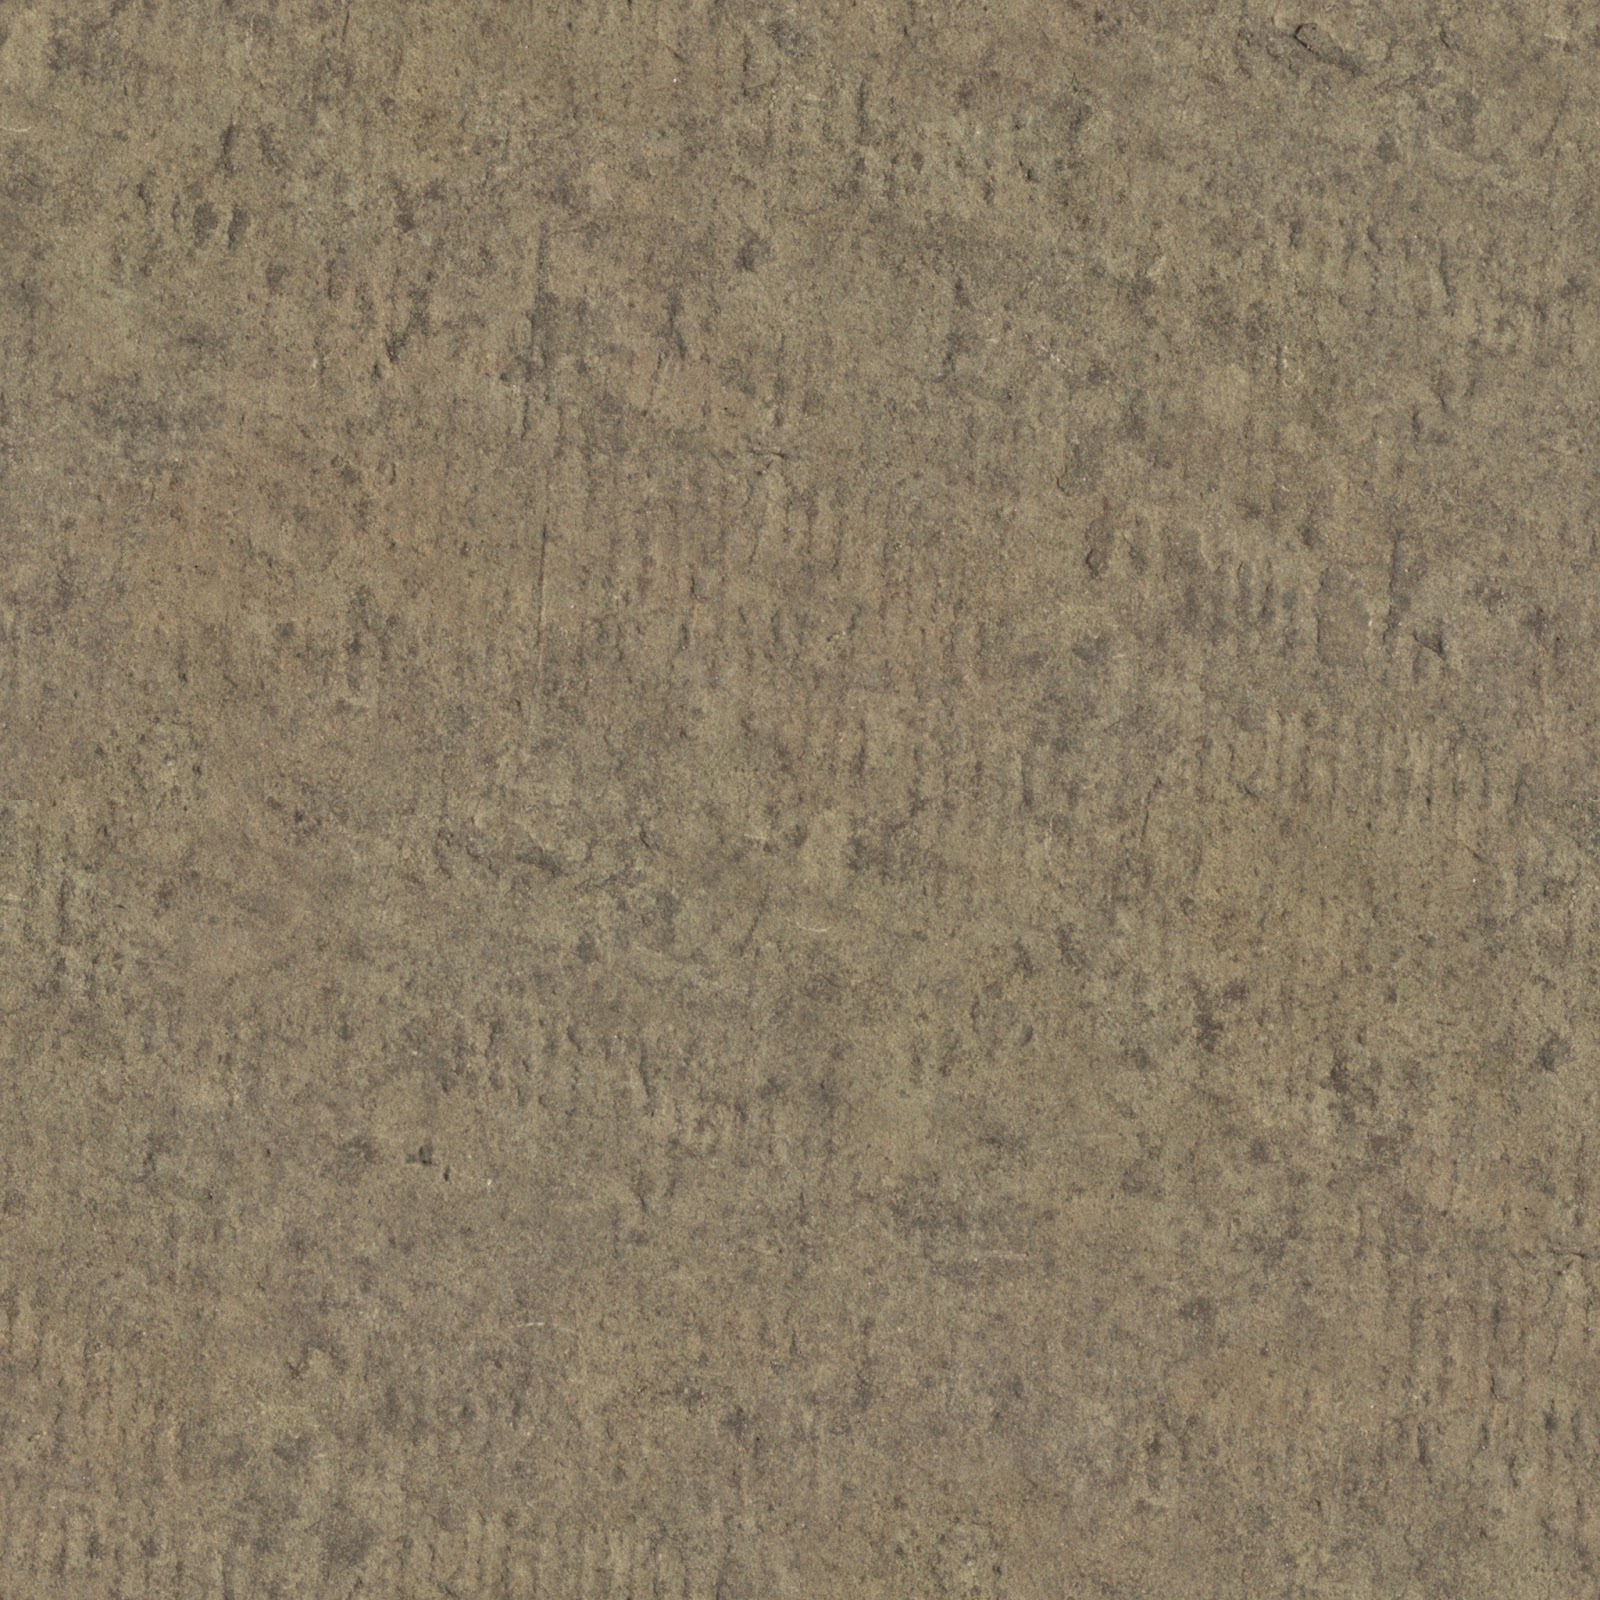 High Resolution Seamless Textures Stone 5 Rock Cave Mountain Brown Texture